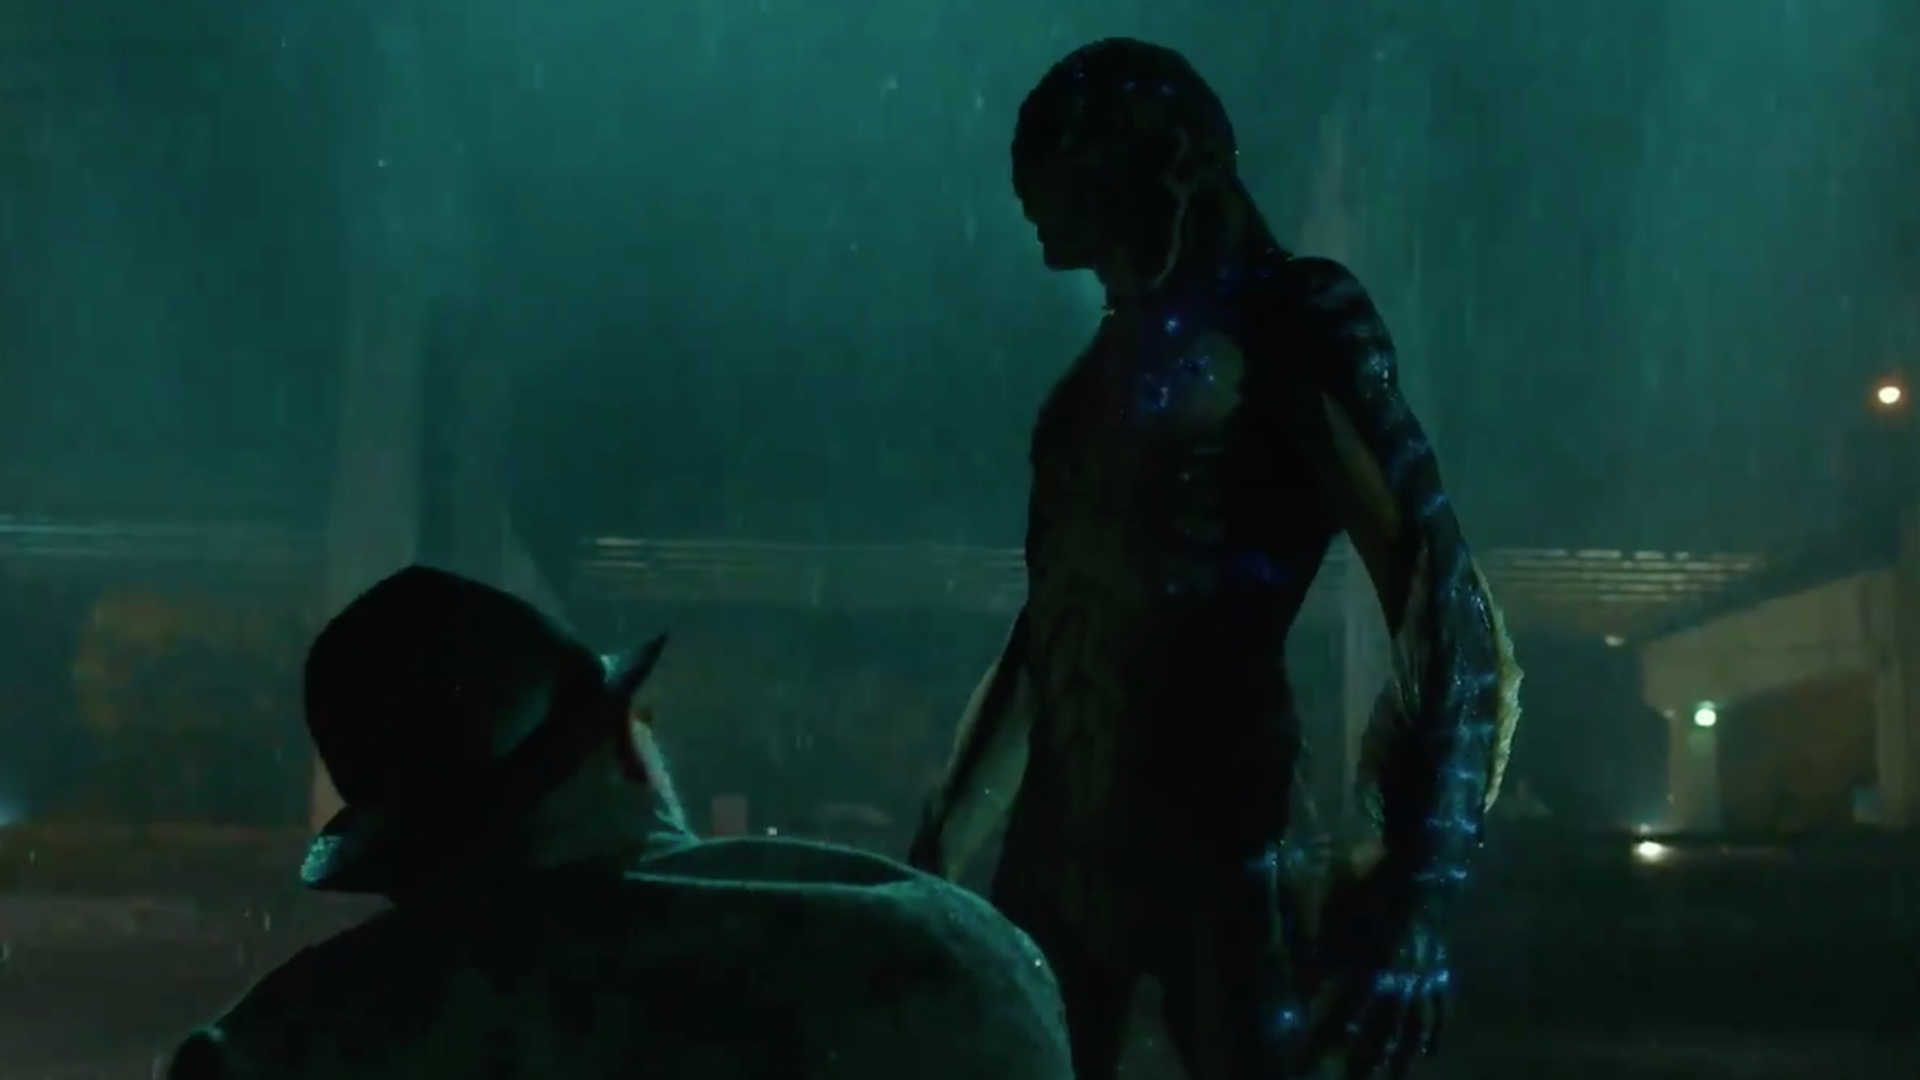 Guillermo Del Toro S The Shape Of Water Gets A Behind The Scenes